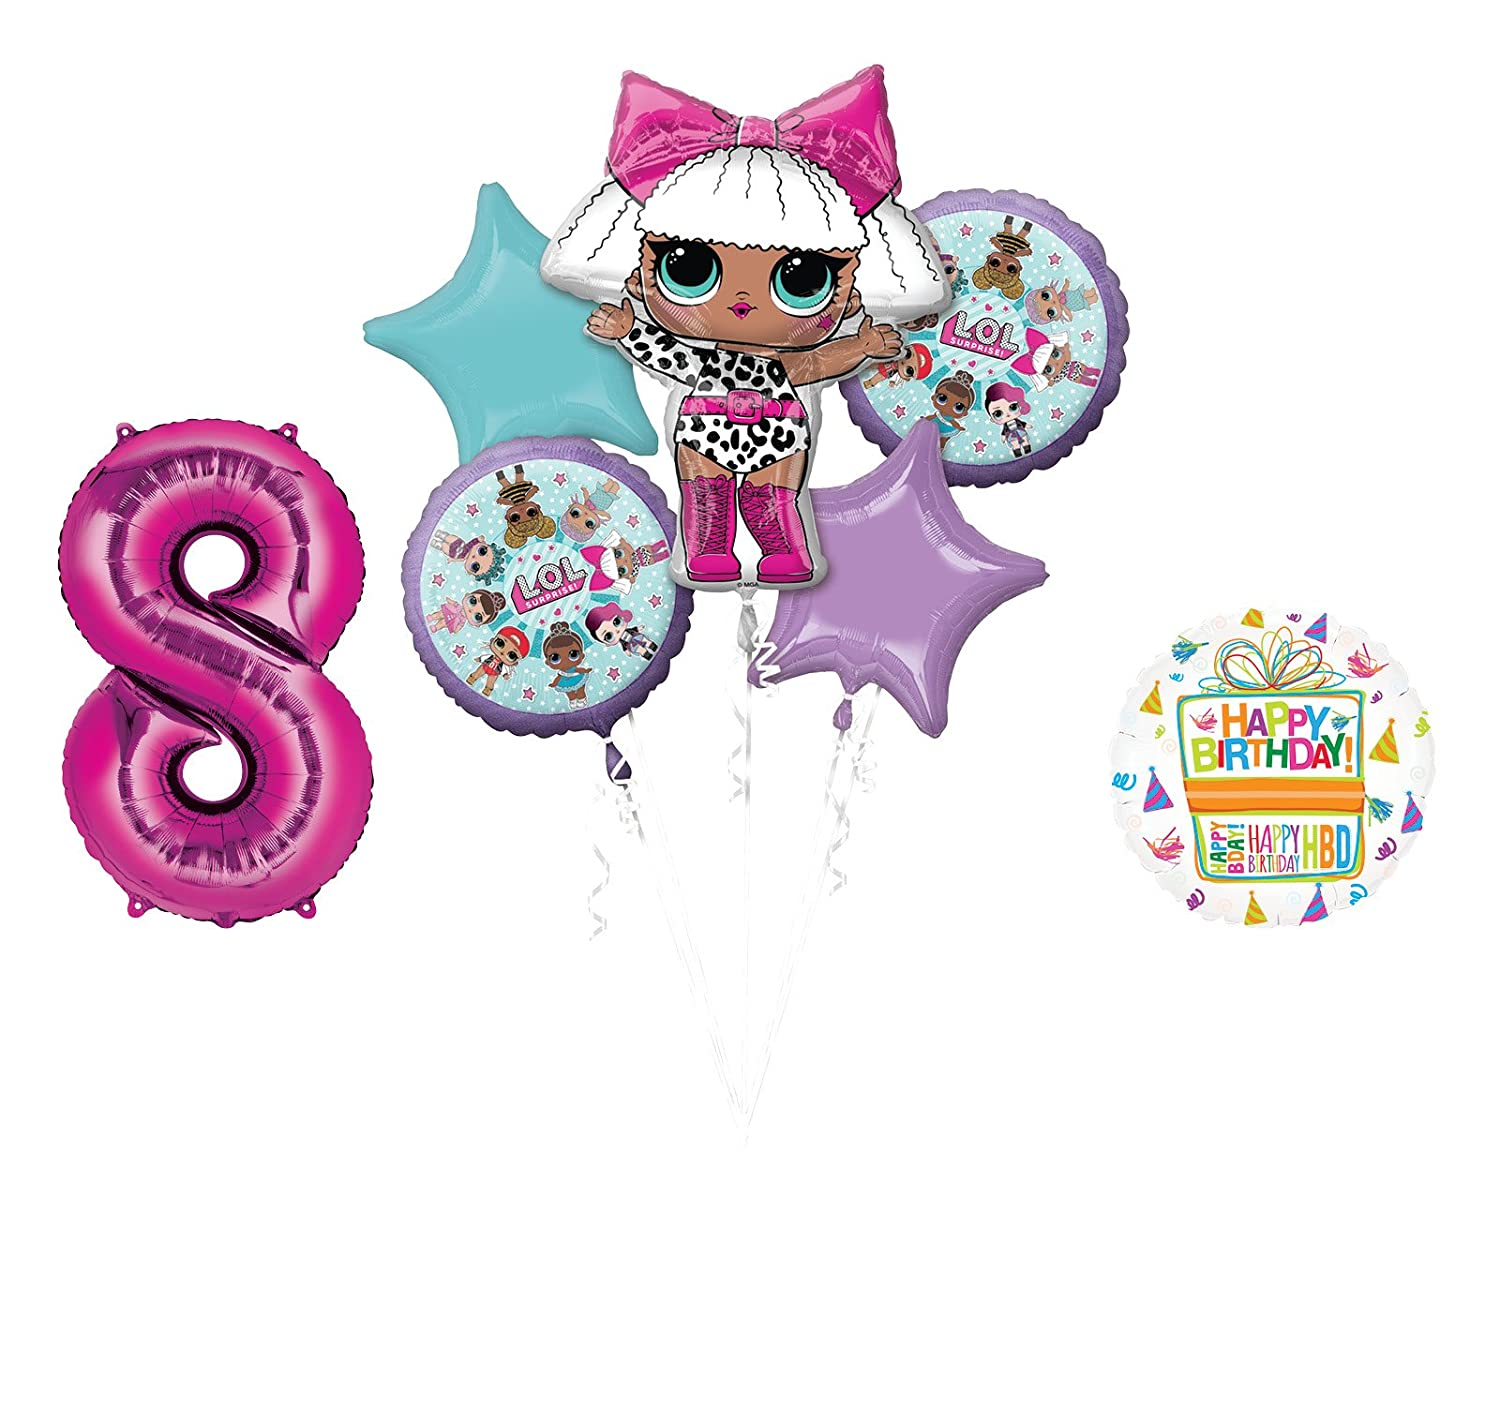 Amazon.com: L.O.L. ¡Sorprenda! Party Supplies - Ramo de ...